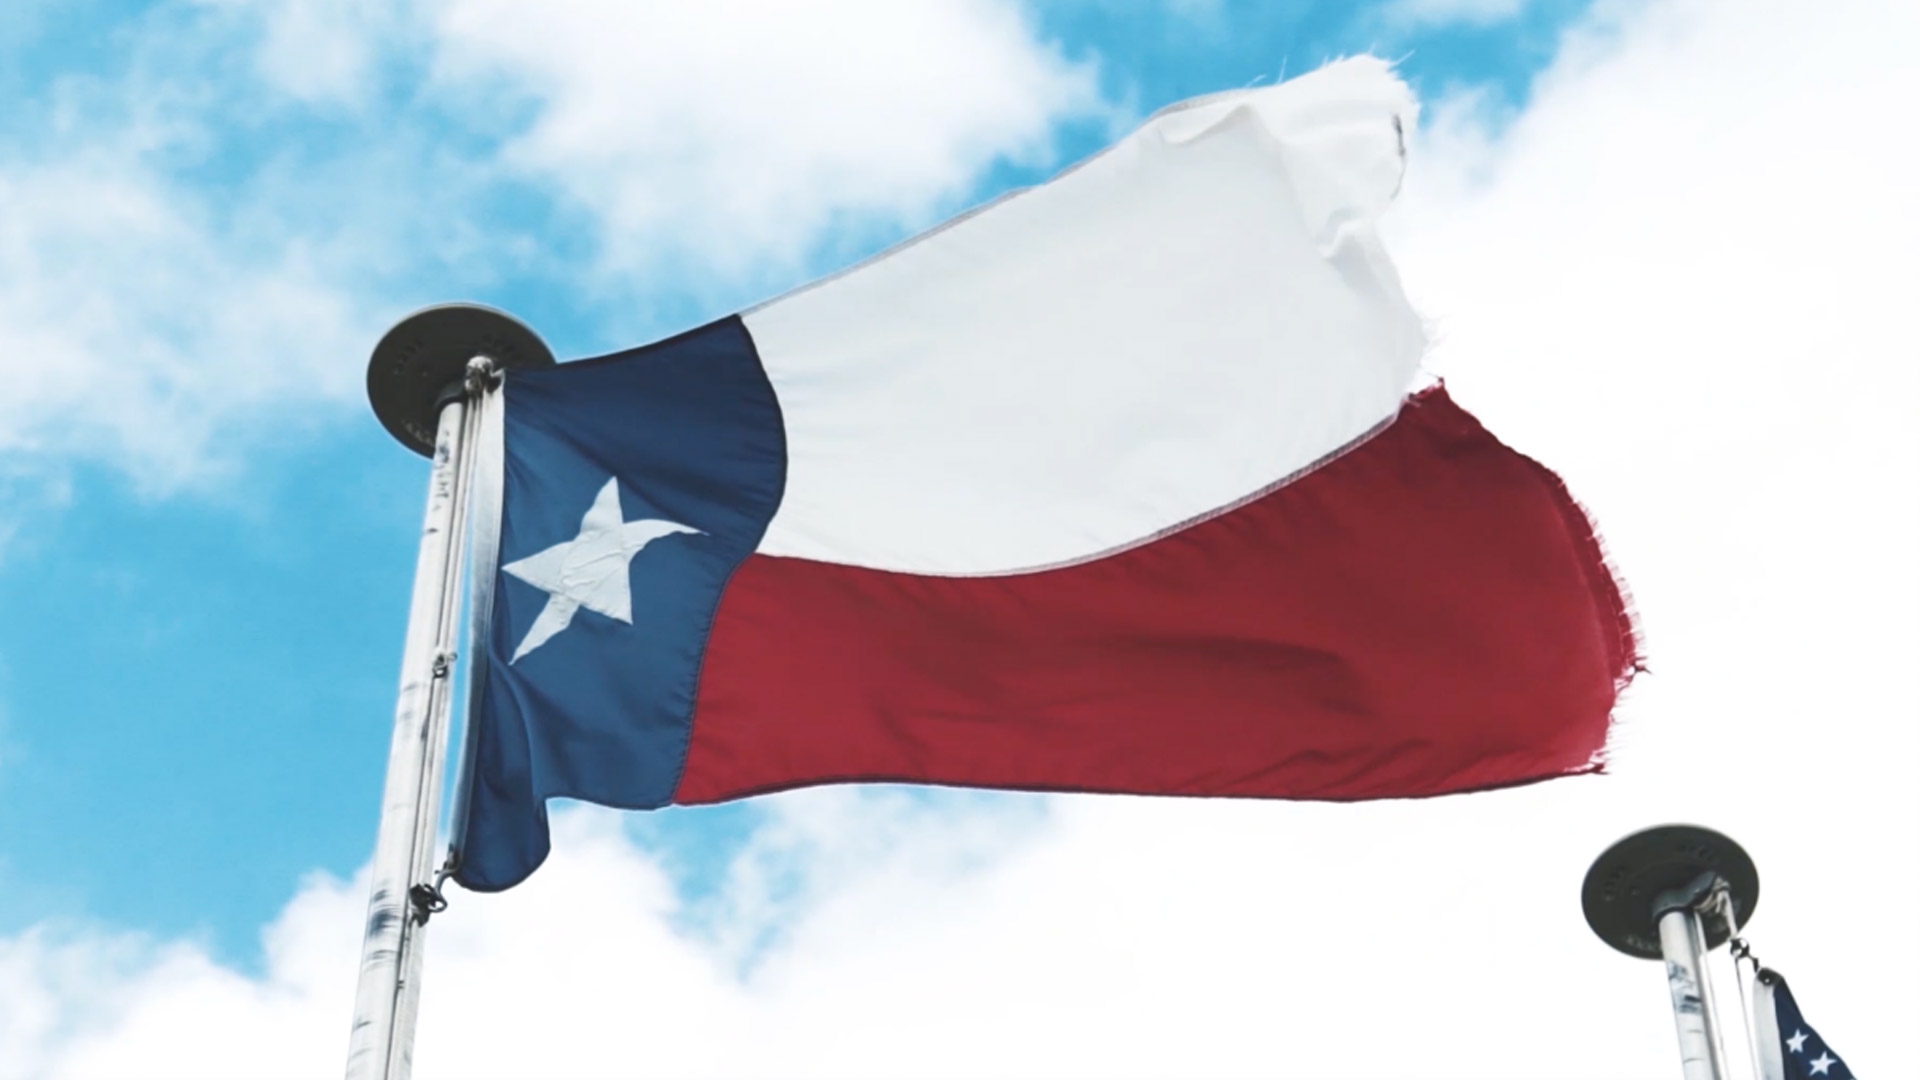 Texas flag swaying in the breeze